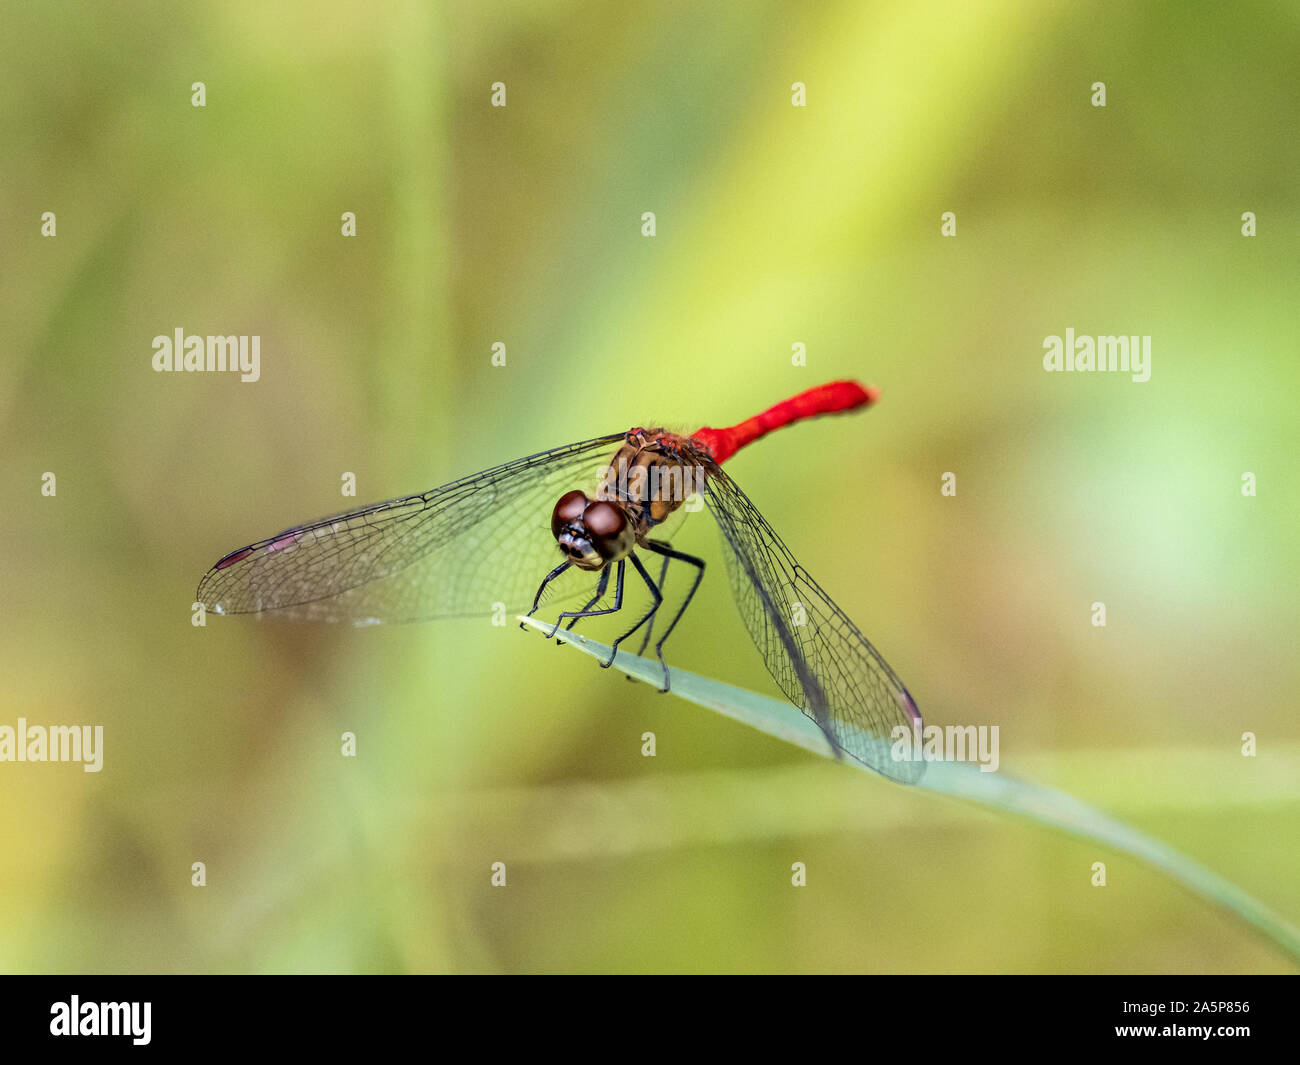 Japanese sympetrum risi yosico dragonflies, part of a family of dragonflies known as darters or meadowhawks, perches on a leaf in a Japanese park. Stock Photo